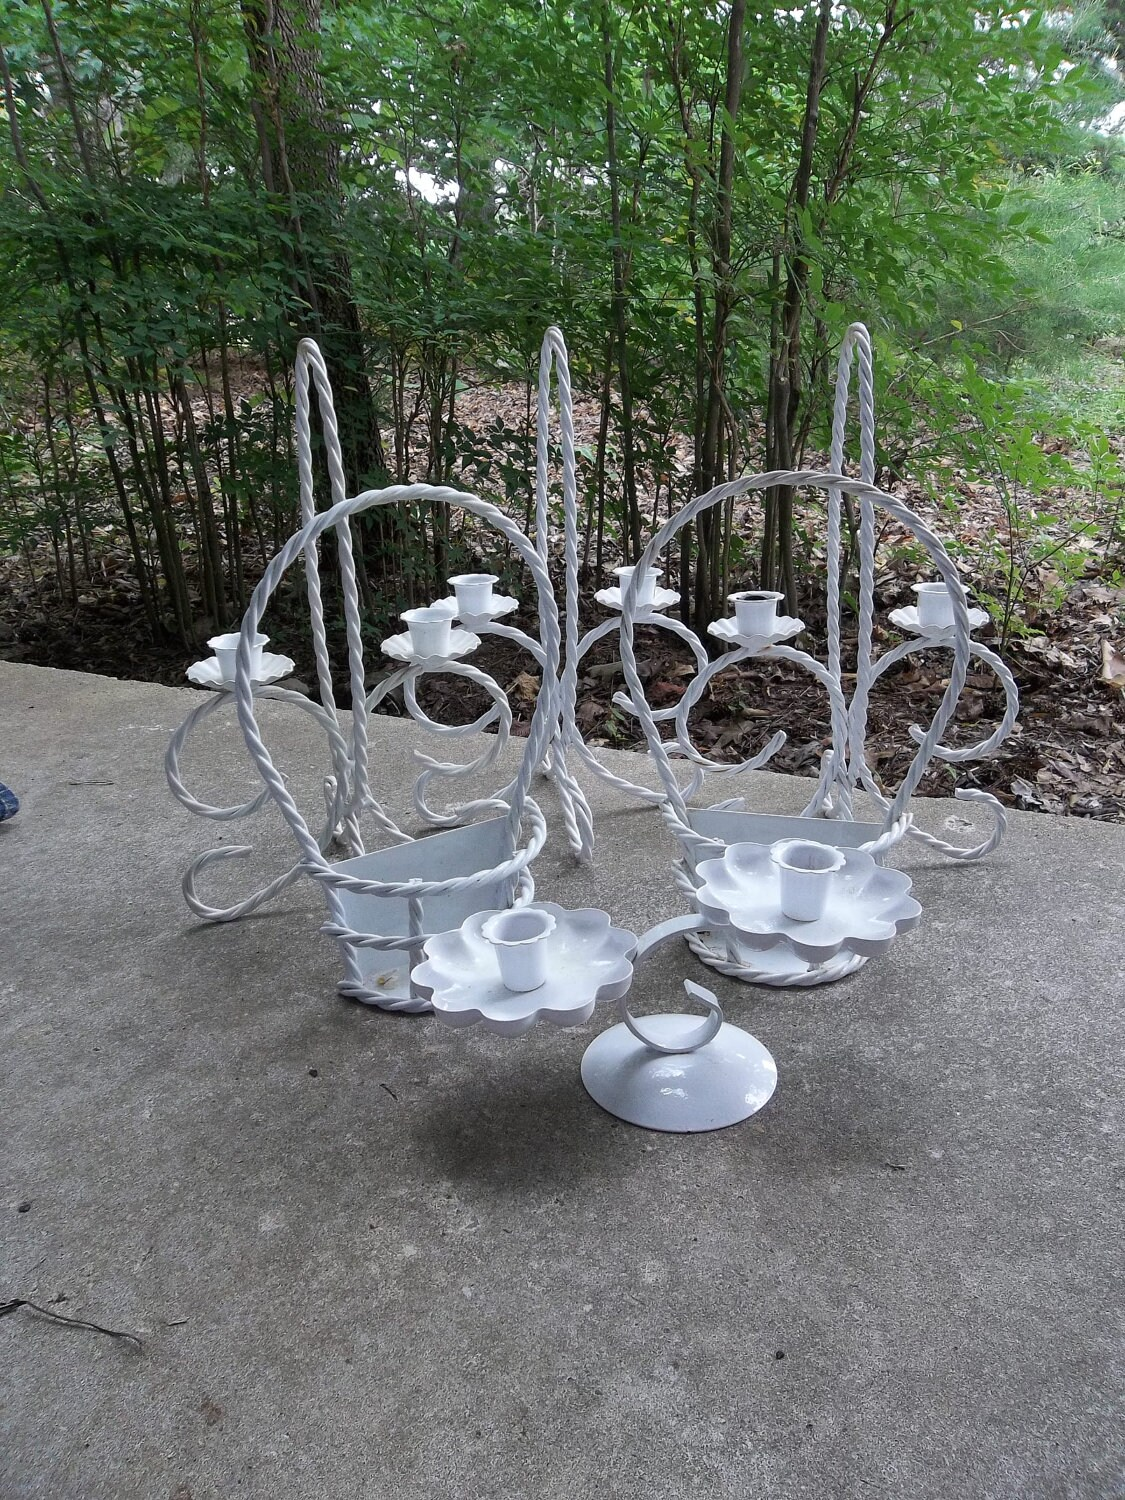 Wrought iron outdoor decor - Wrought Iron Candle Holders Vintage Wedding Decor Table Garden Idea